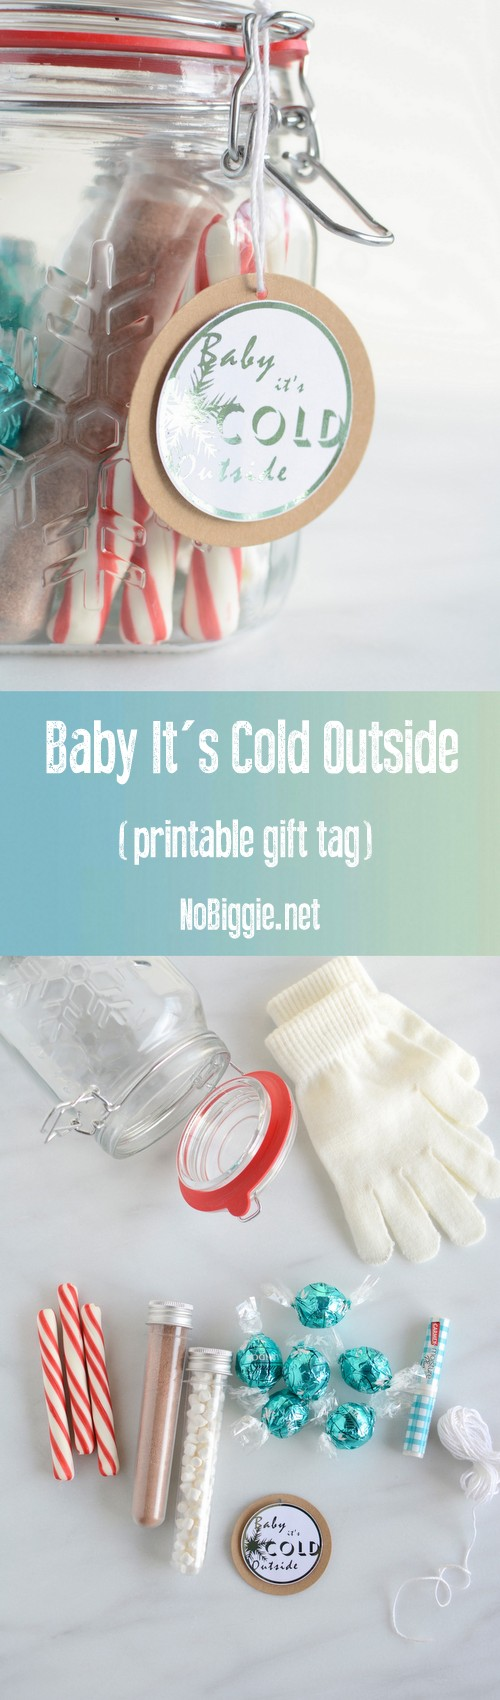 Baby it's cold outside free printable gift tags | NoBiggie.net